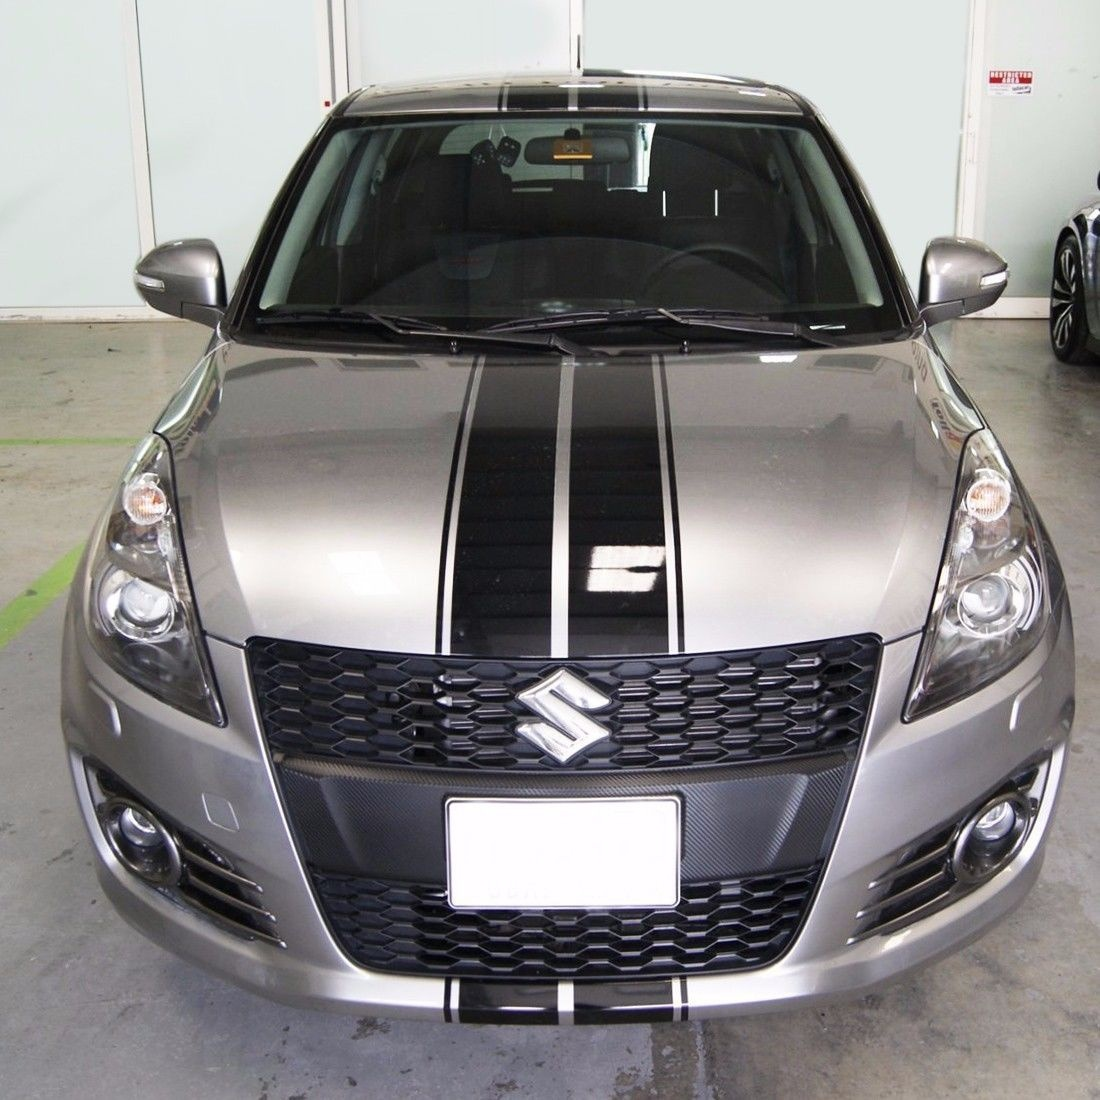 For sticker decal graphic stripe body kit for suzuki swift s bumper lamp front rear car styling for hood roof truck